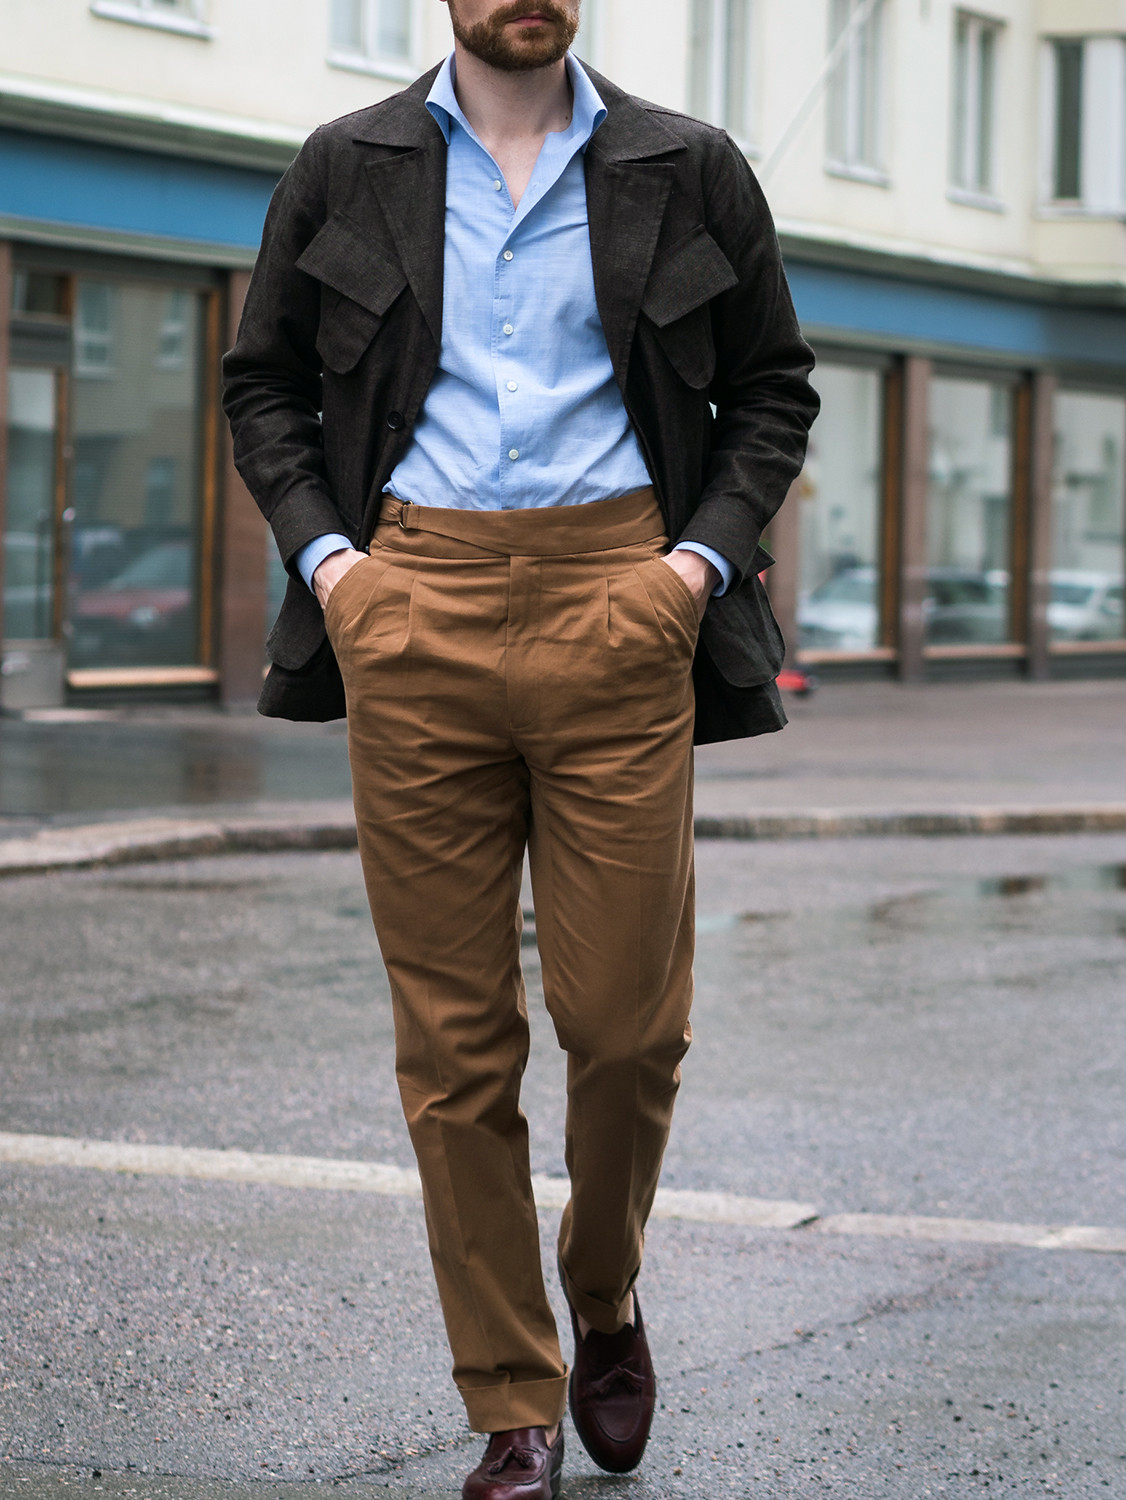 Men's outfit idea for 2021 with brown utility jacket, blue formal shirt, neutral plain formal trousers. Suitable for spring and autumn.